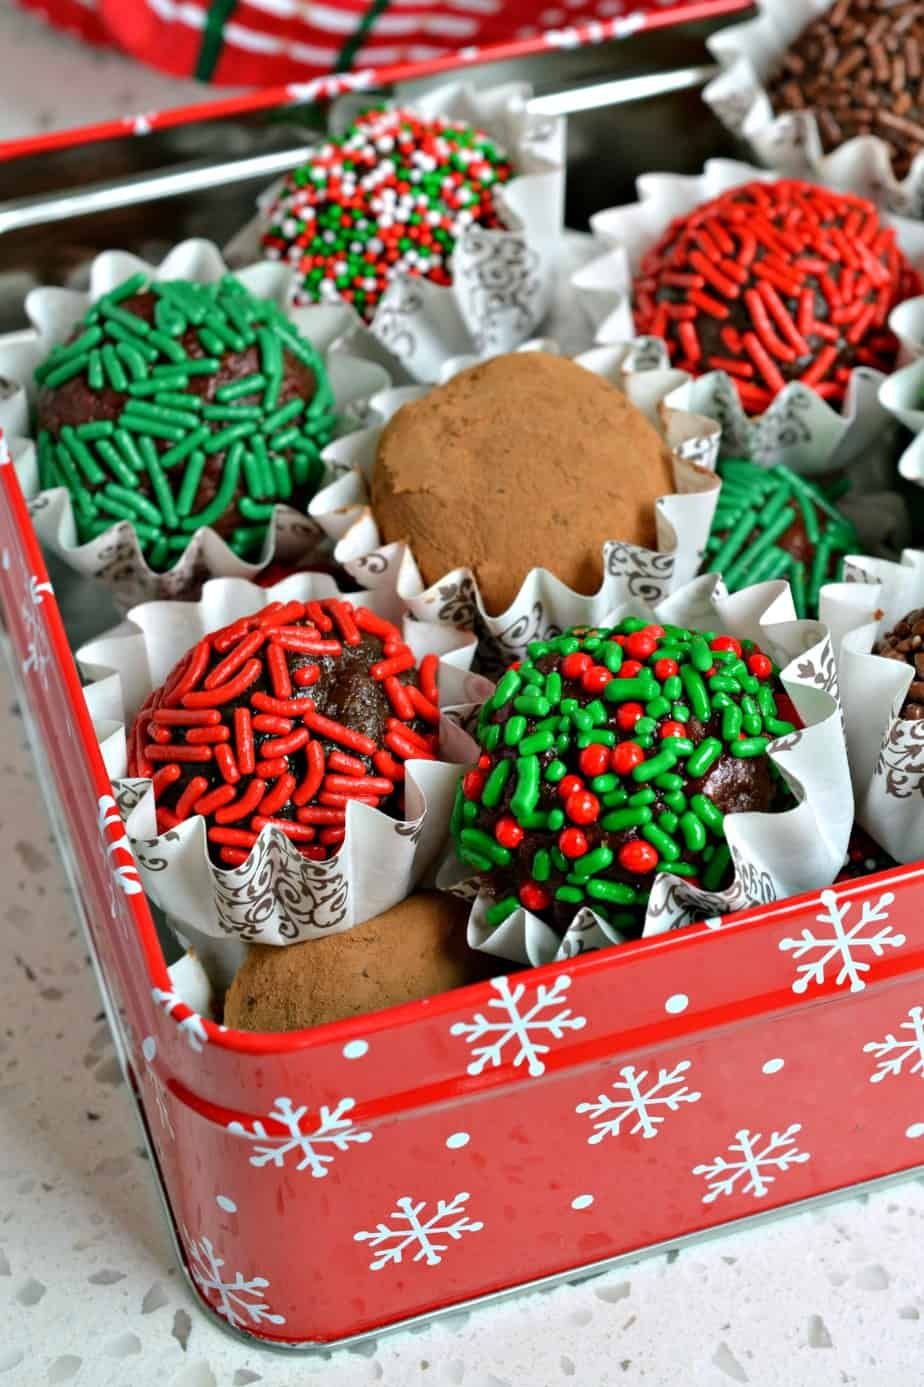 Thesse Chocolate Rum Balls Can be decorated to suit any occasion.